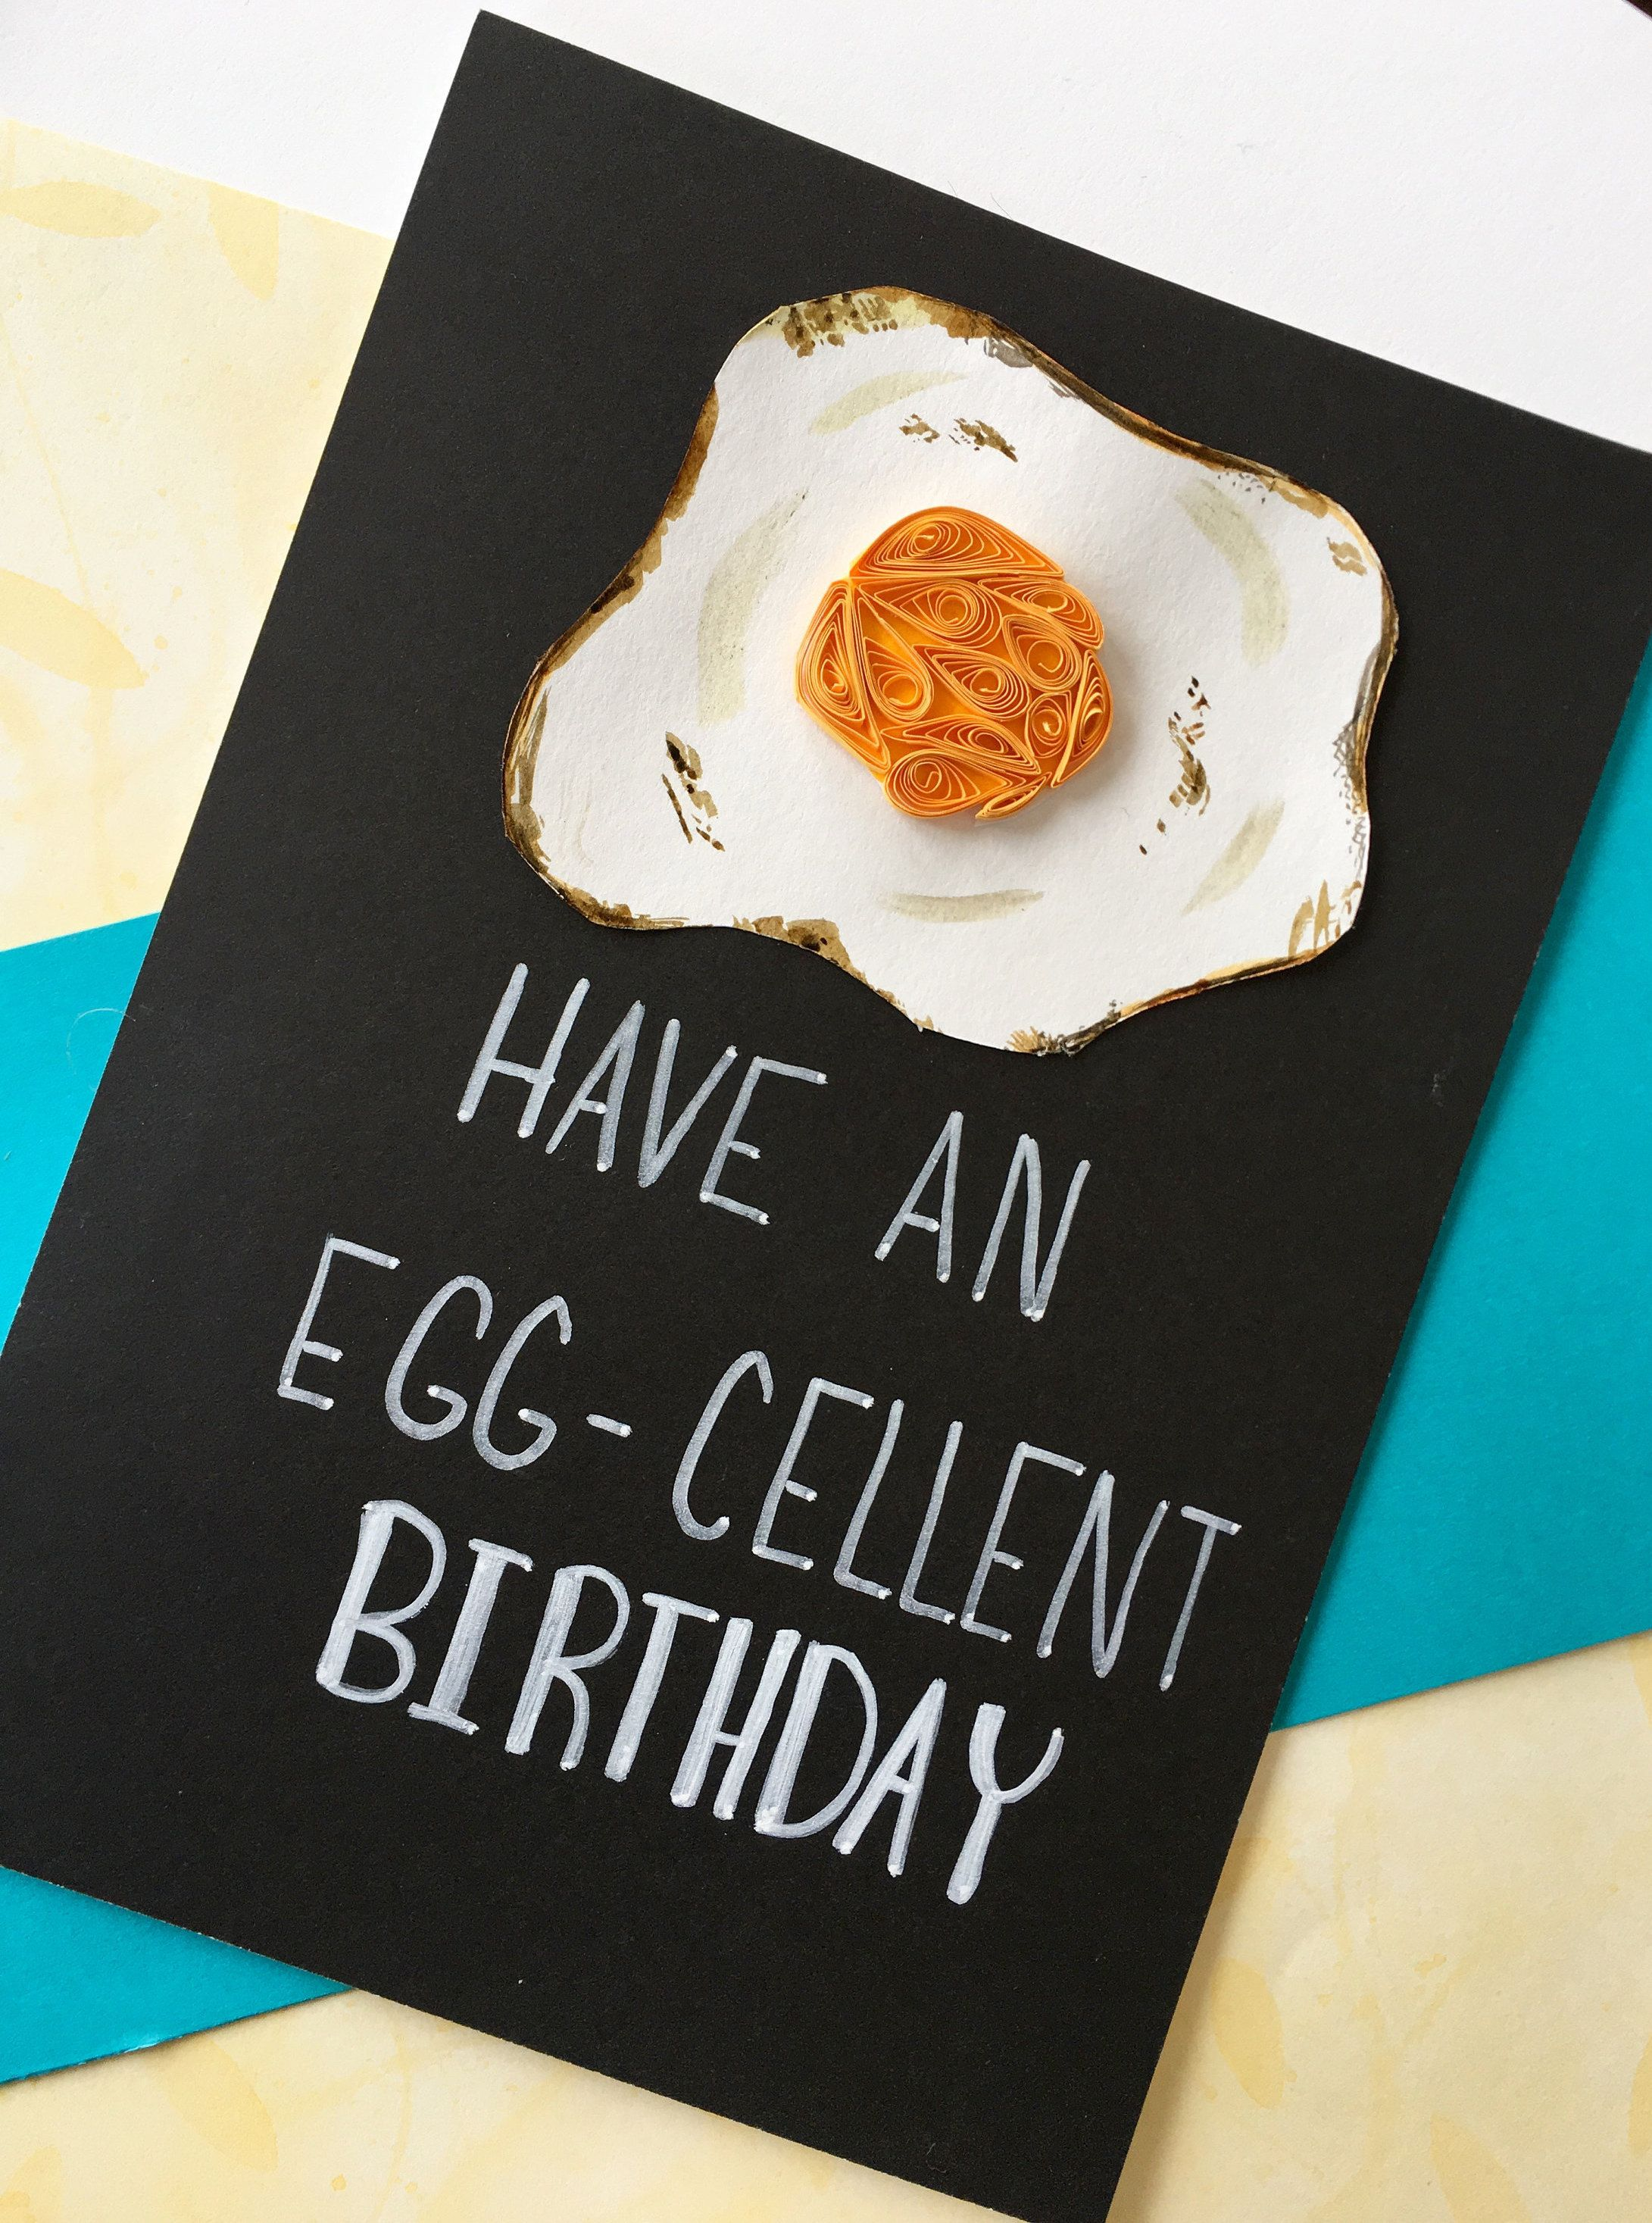 Funny birthday card quilling food puns greeting cards paper for husband boyfriend egg also rh pinterest